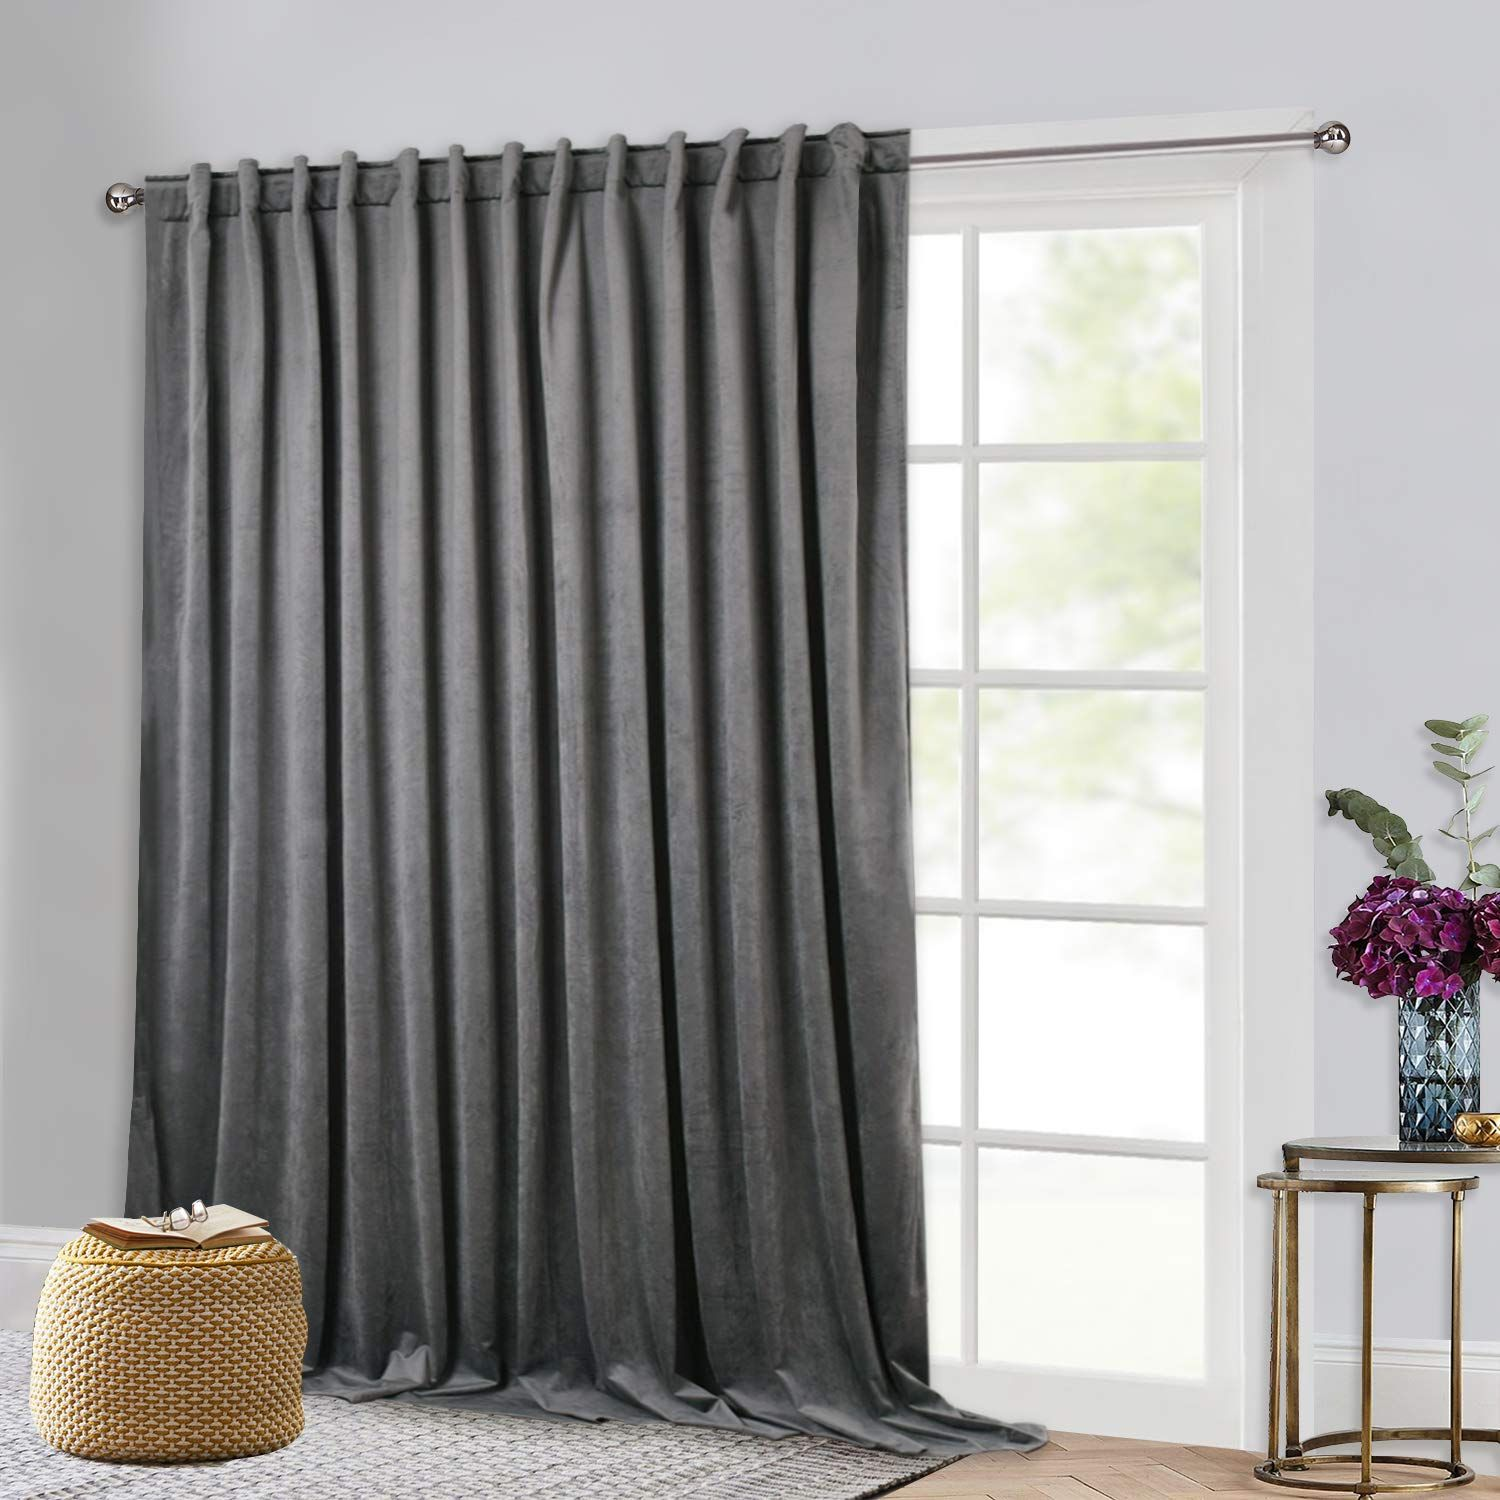 Grey Velvet Curtains For Sliding Door Sunlight And Heat Reducing Large Window Curtains Heavy Dut Sliding Door Curtains Velvet Curtains Living Room Patio Doors